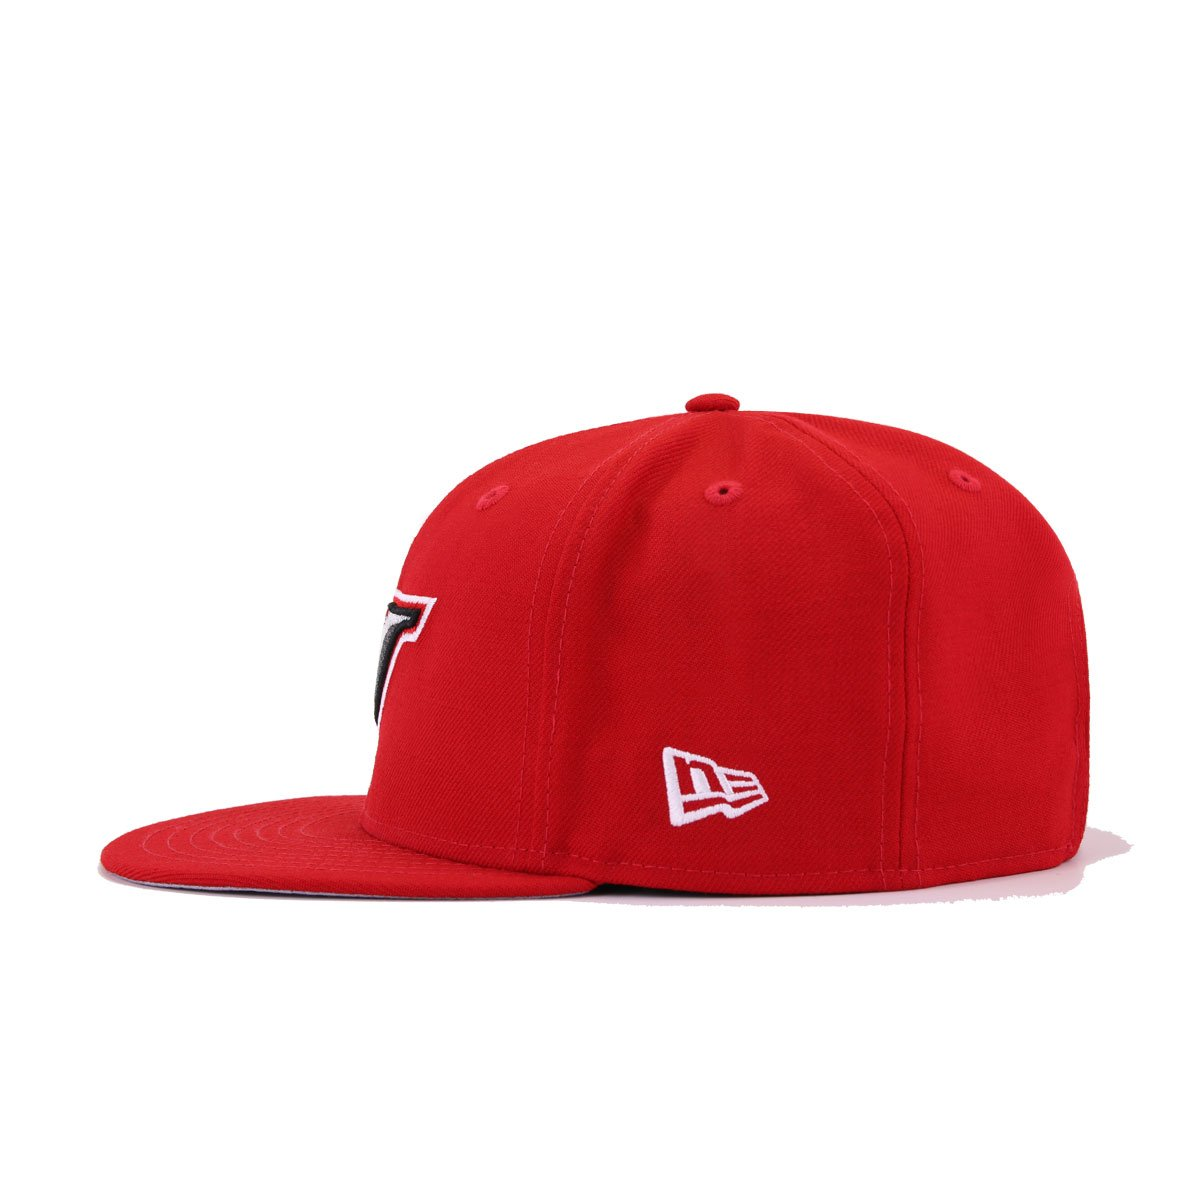 Toronto Blue Jays Scarlet 30th Anniversary Cooperstown New Era 9Fifty Snapback